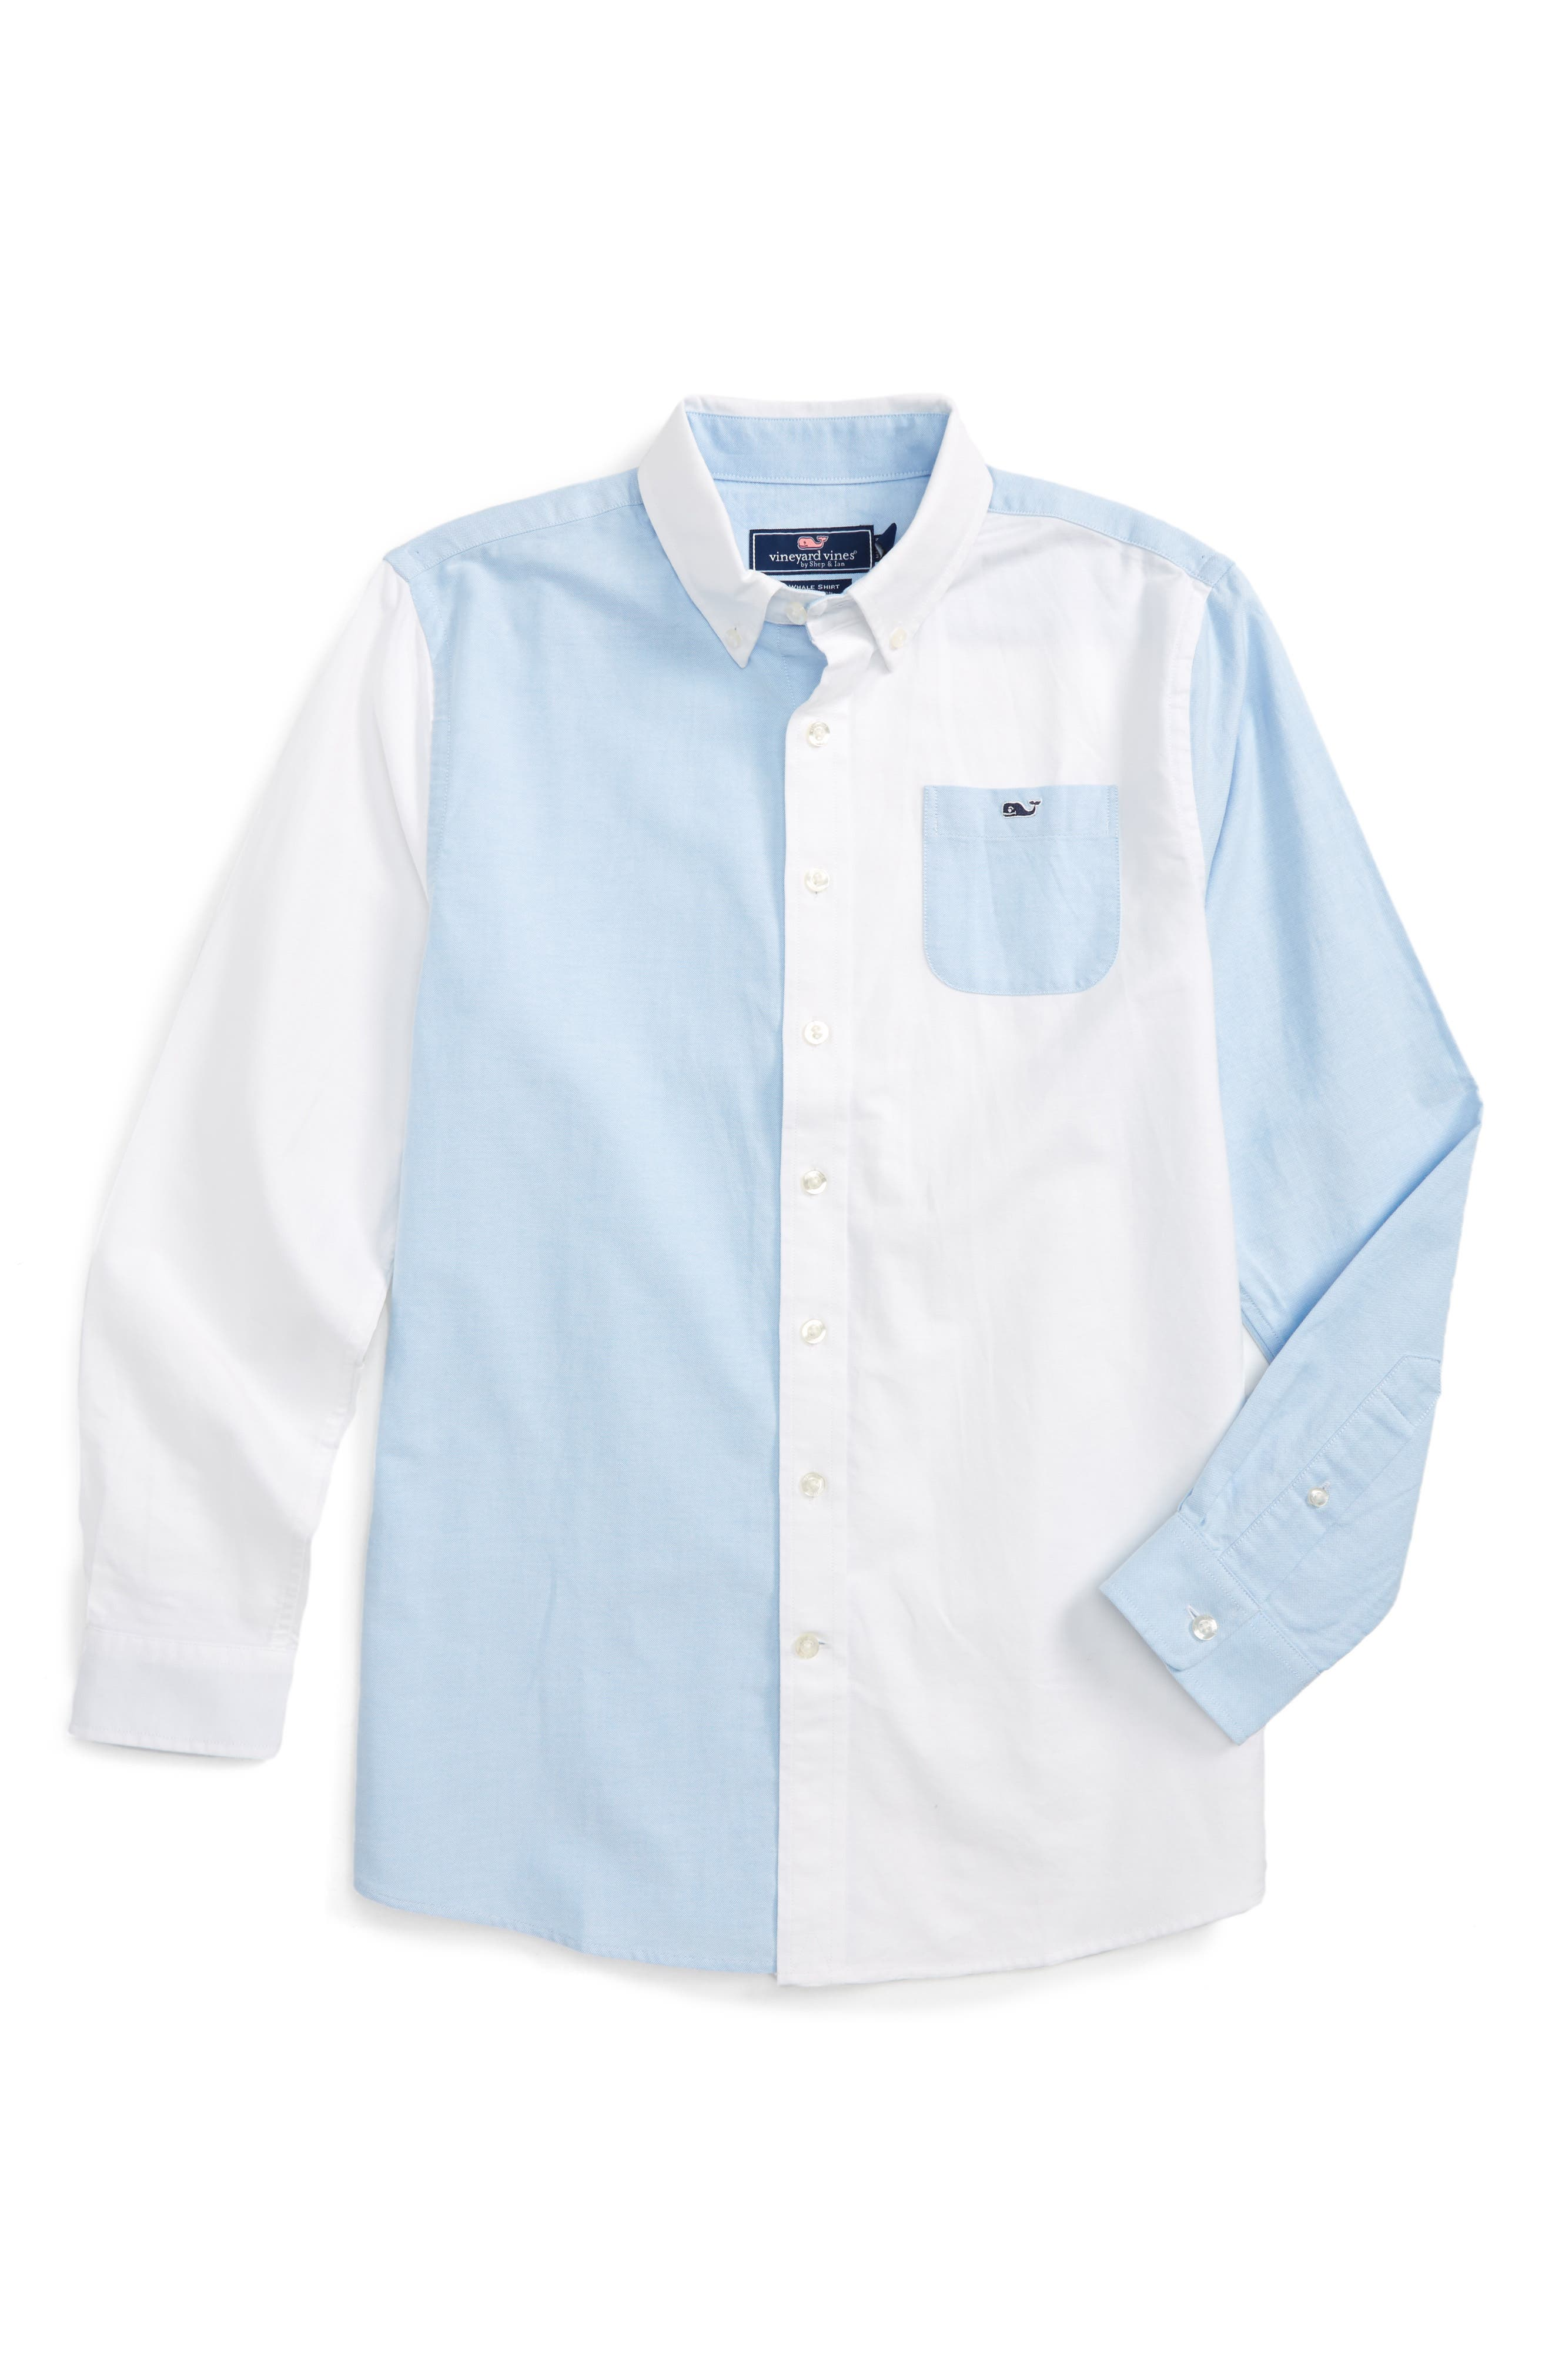 Alternate Image 1 Selected - vineyard vines Party Whale Oxford Shirt (Big Boys)